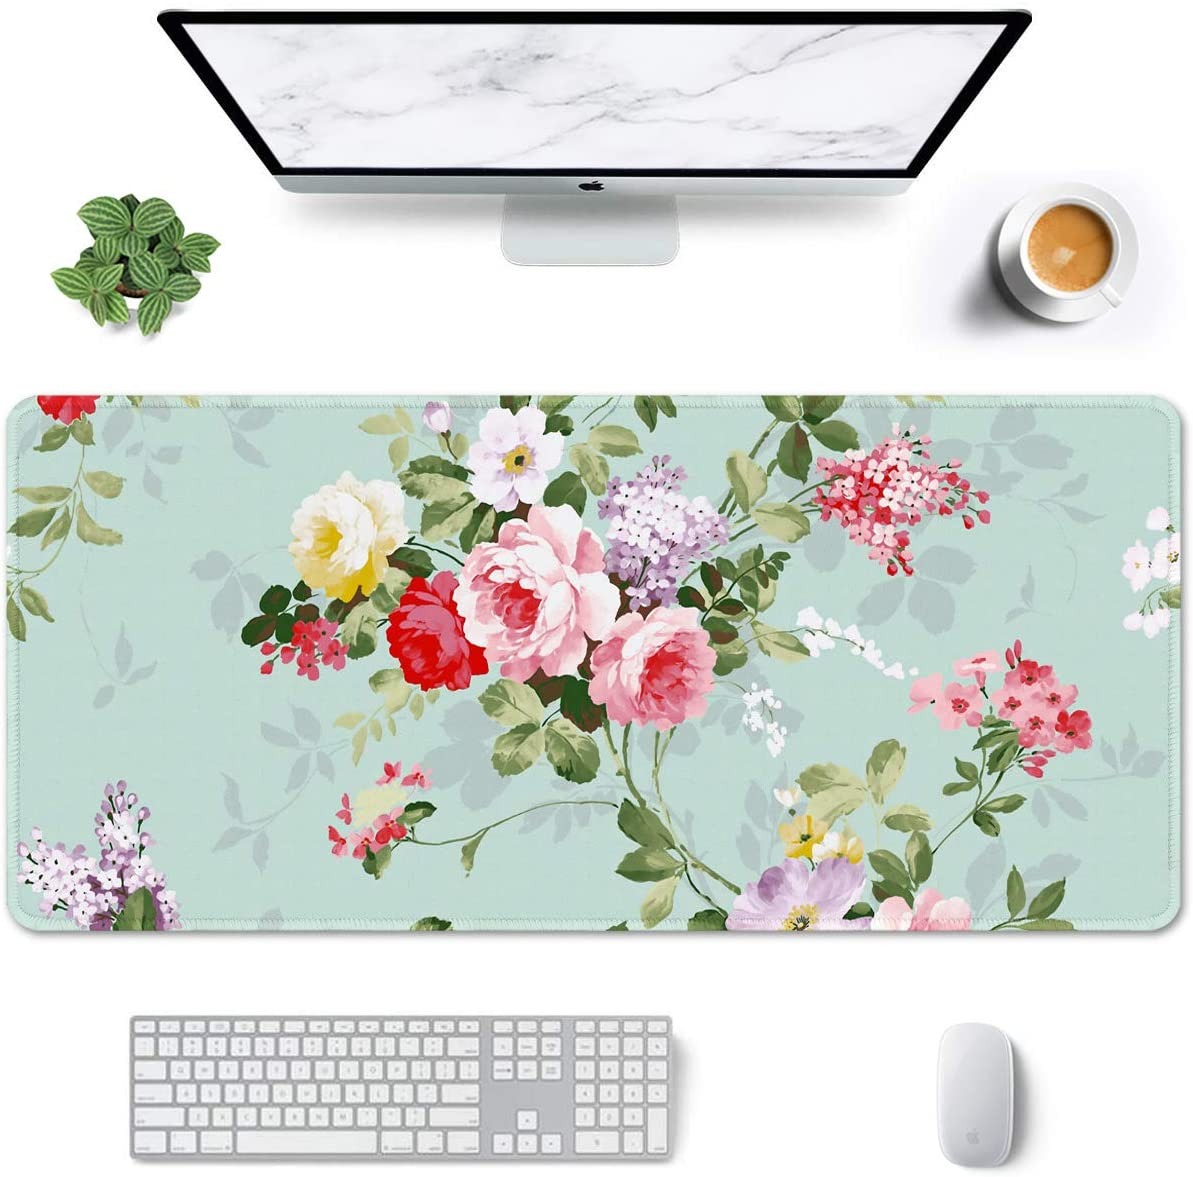 """Auhoahsil Large Mouse Pad, Full Desk XXL Extended Gaming Mouse Pad 35"""" X 15"""", Waterproof Desktop Mat with Stitched Edge, Non-Slip Laptop Computer Keyboard Mousepad for Office & Home, Flowers Design"""